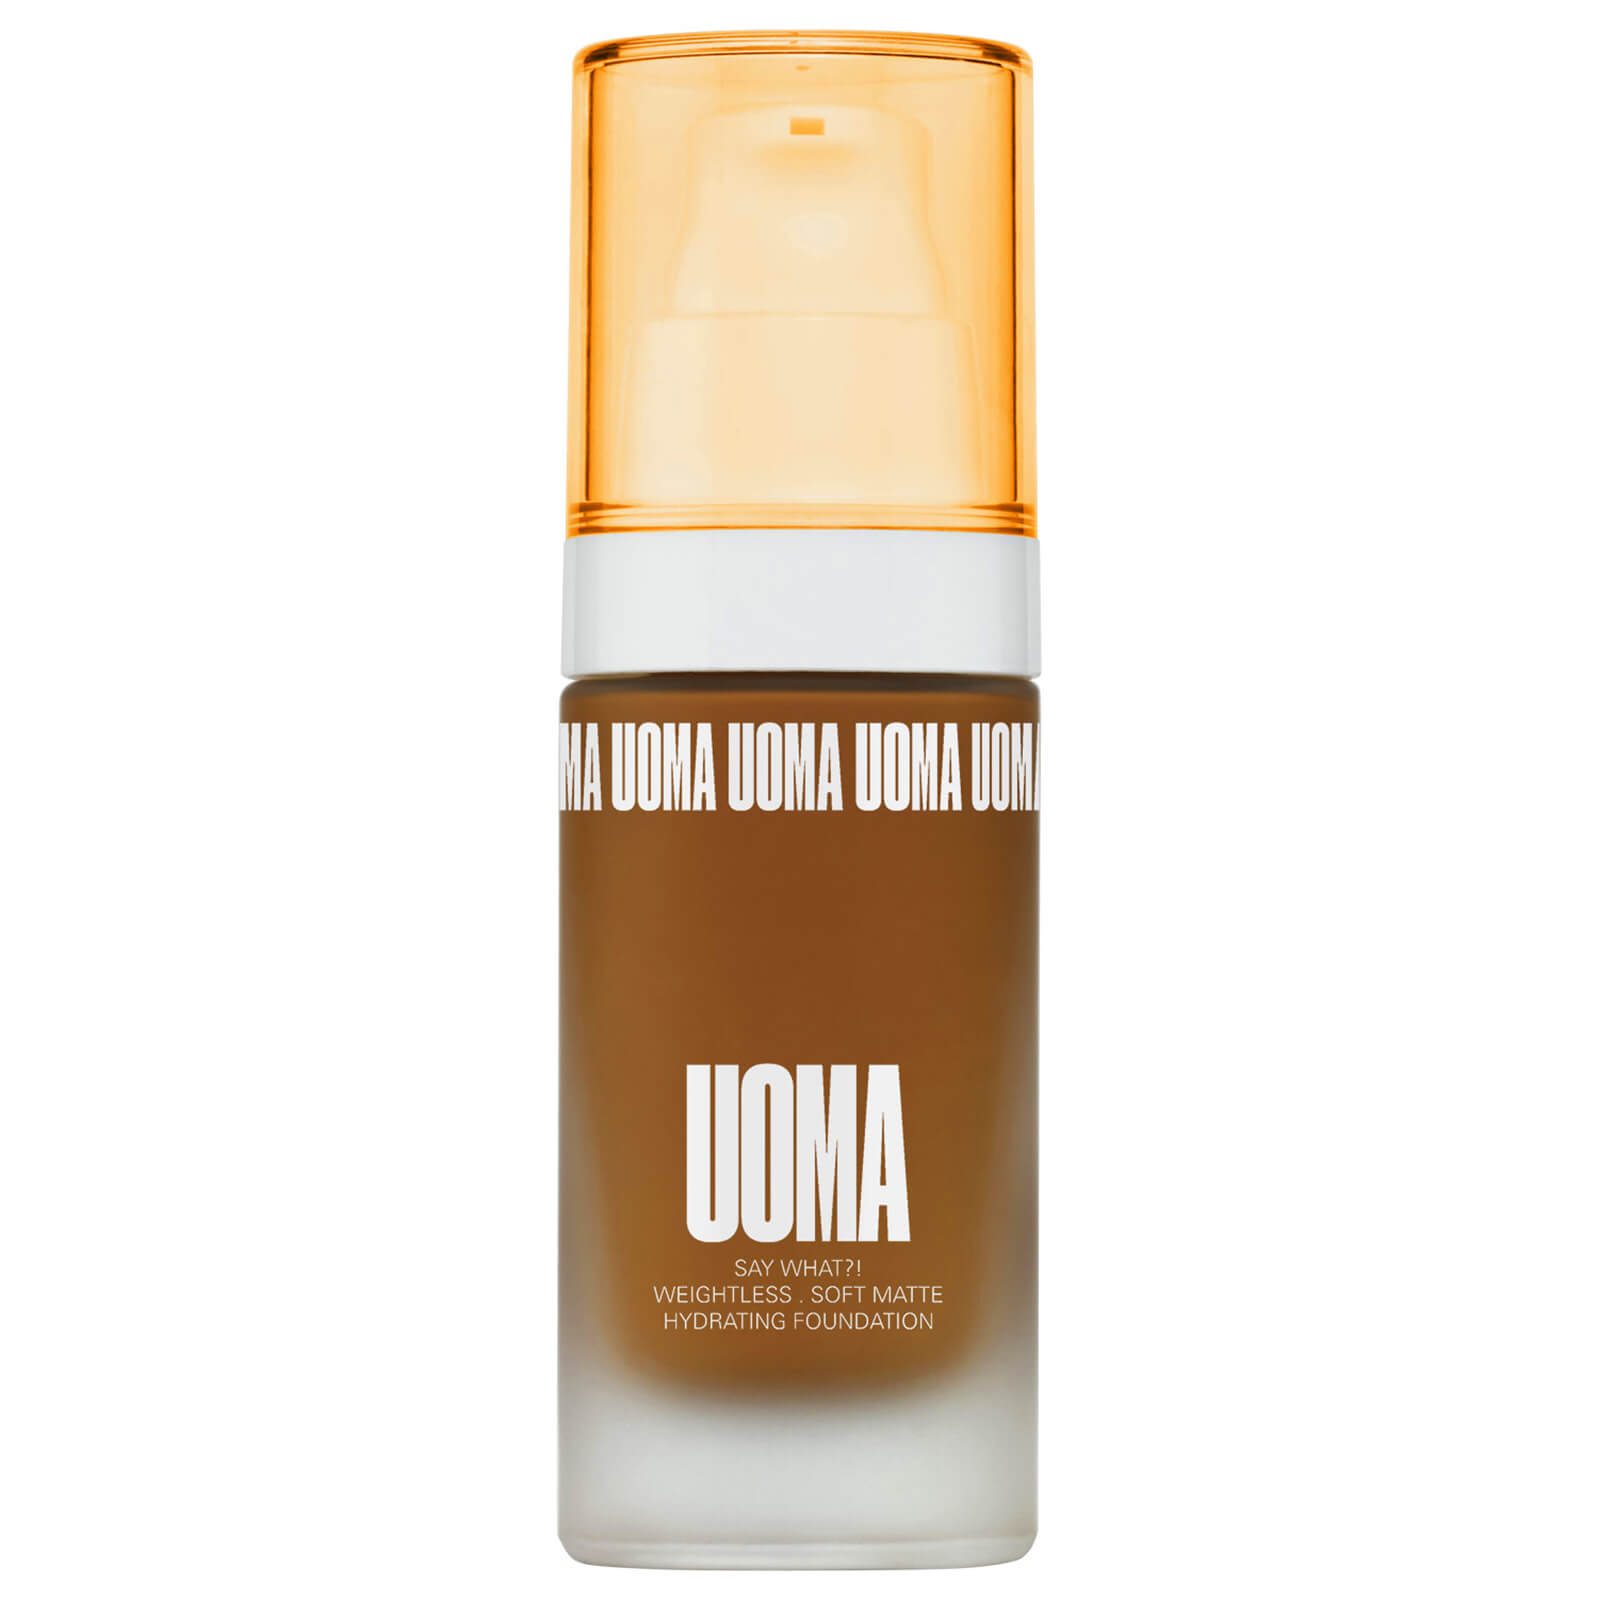 UOMA Beauty Say What Foundation 30ml (Various Shades) - Brown Sugar T3W